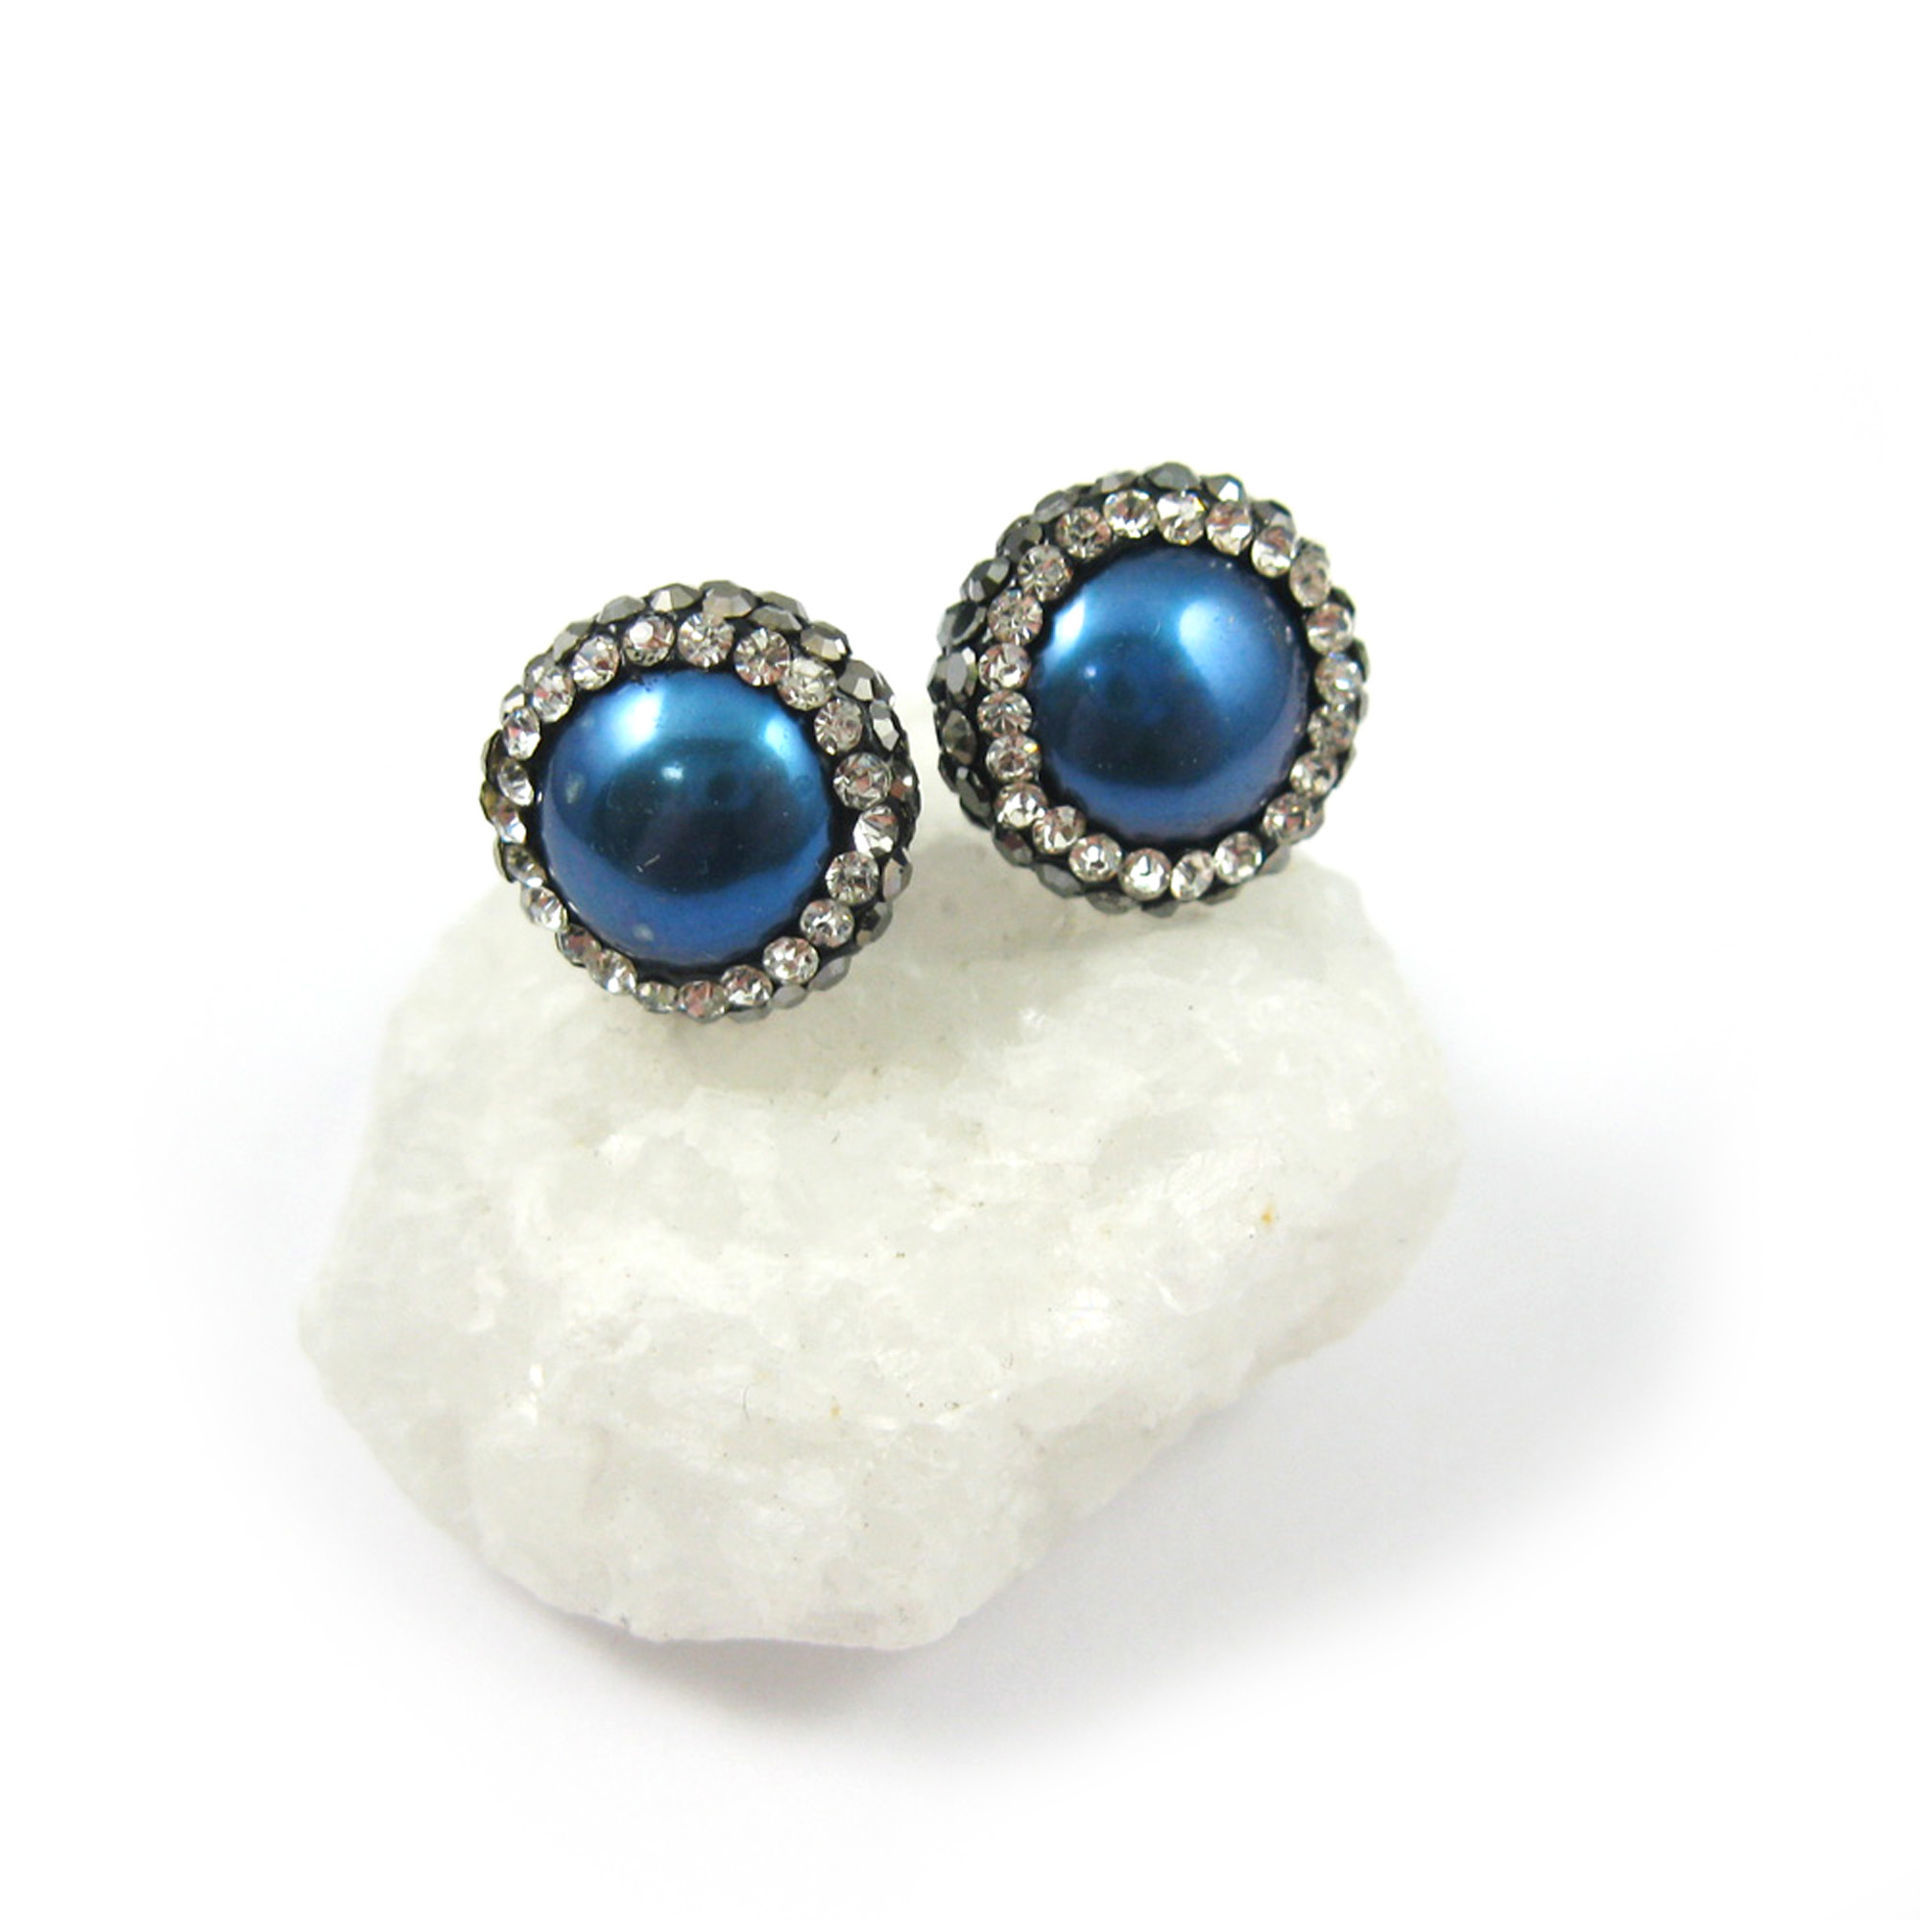 Blue Freshwater Pearl Pave Earring, Sterling Silver Posts, Pearl and Pave Earrings - 1 pair